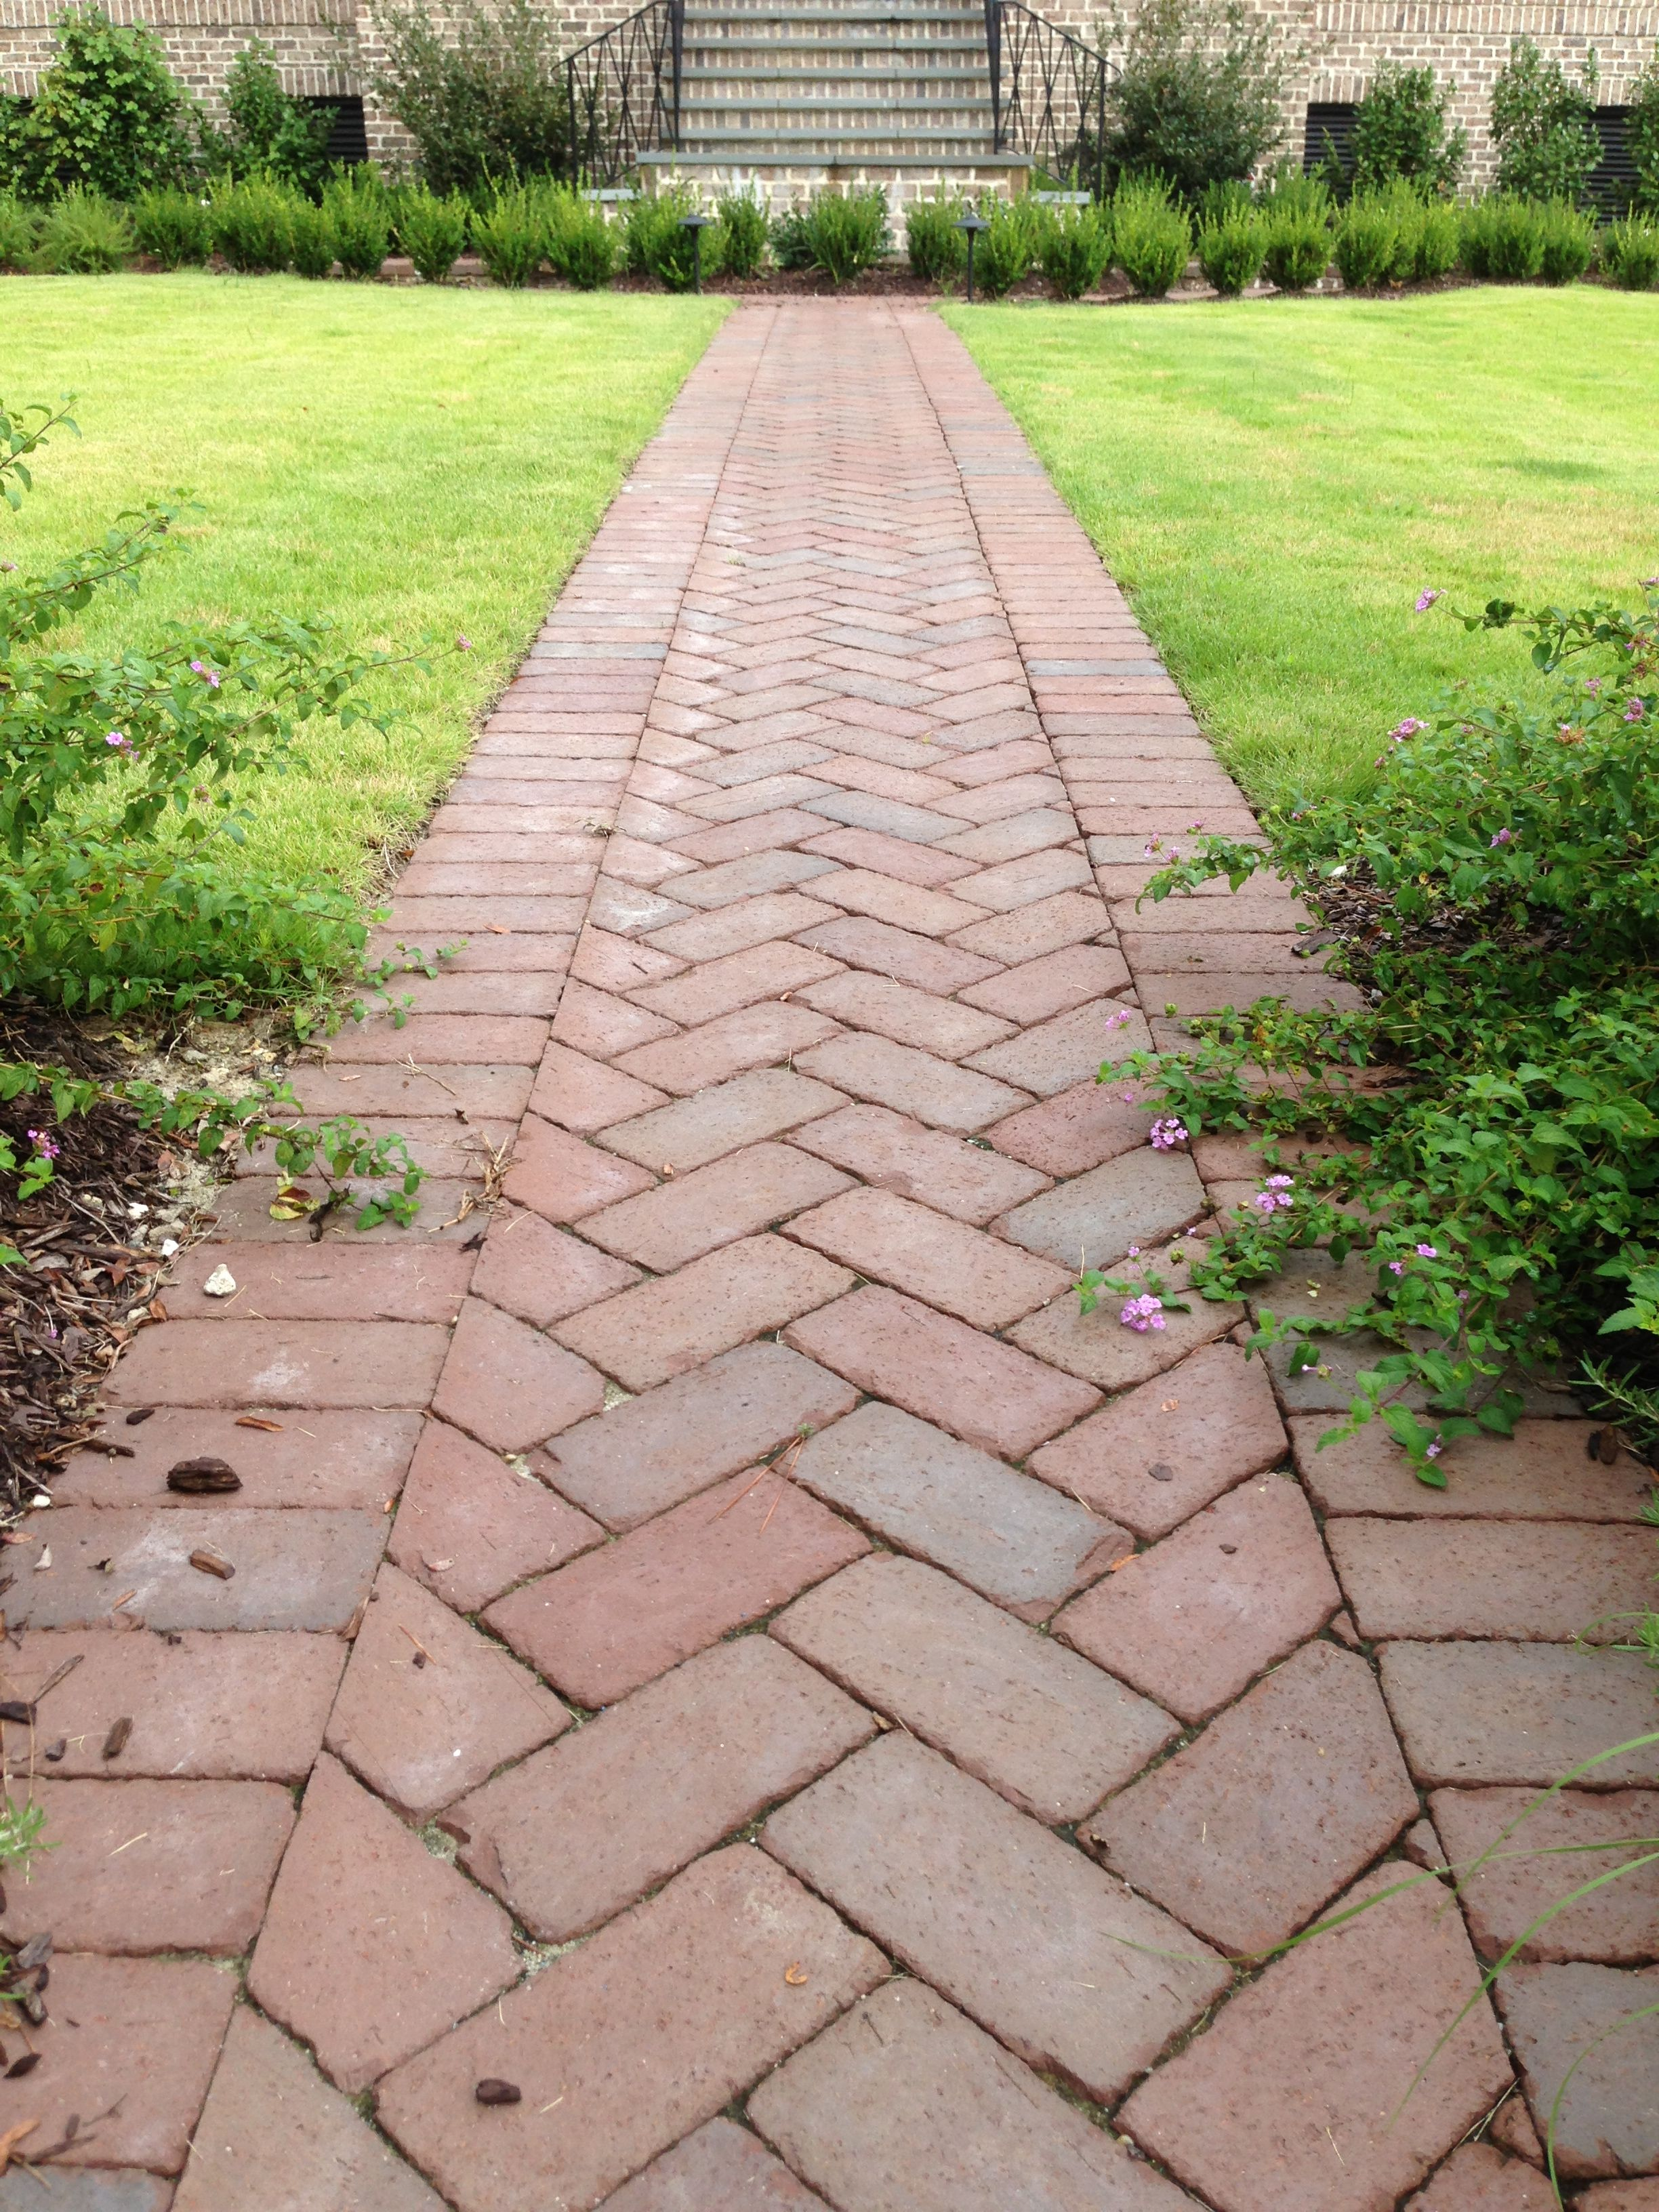 Straight Ahead This Herringbone Path With A Soldier Border Is Made From Rumbled Cocoa Clay Pavers Made By Pine Hall Br Brick Sidewalk Brick Path Brick Pavers